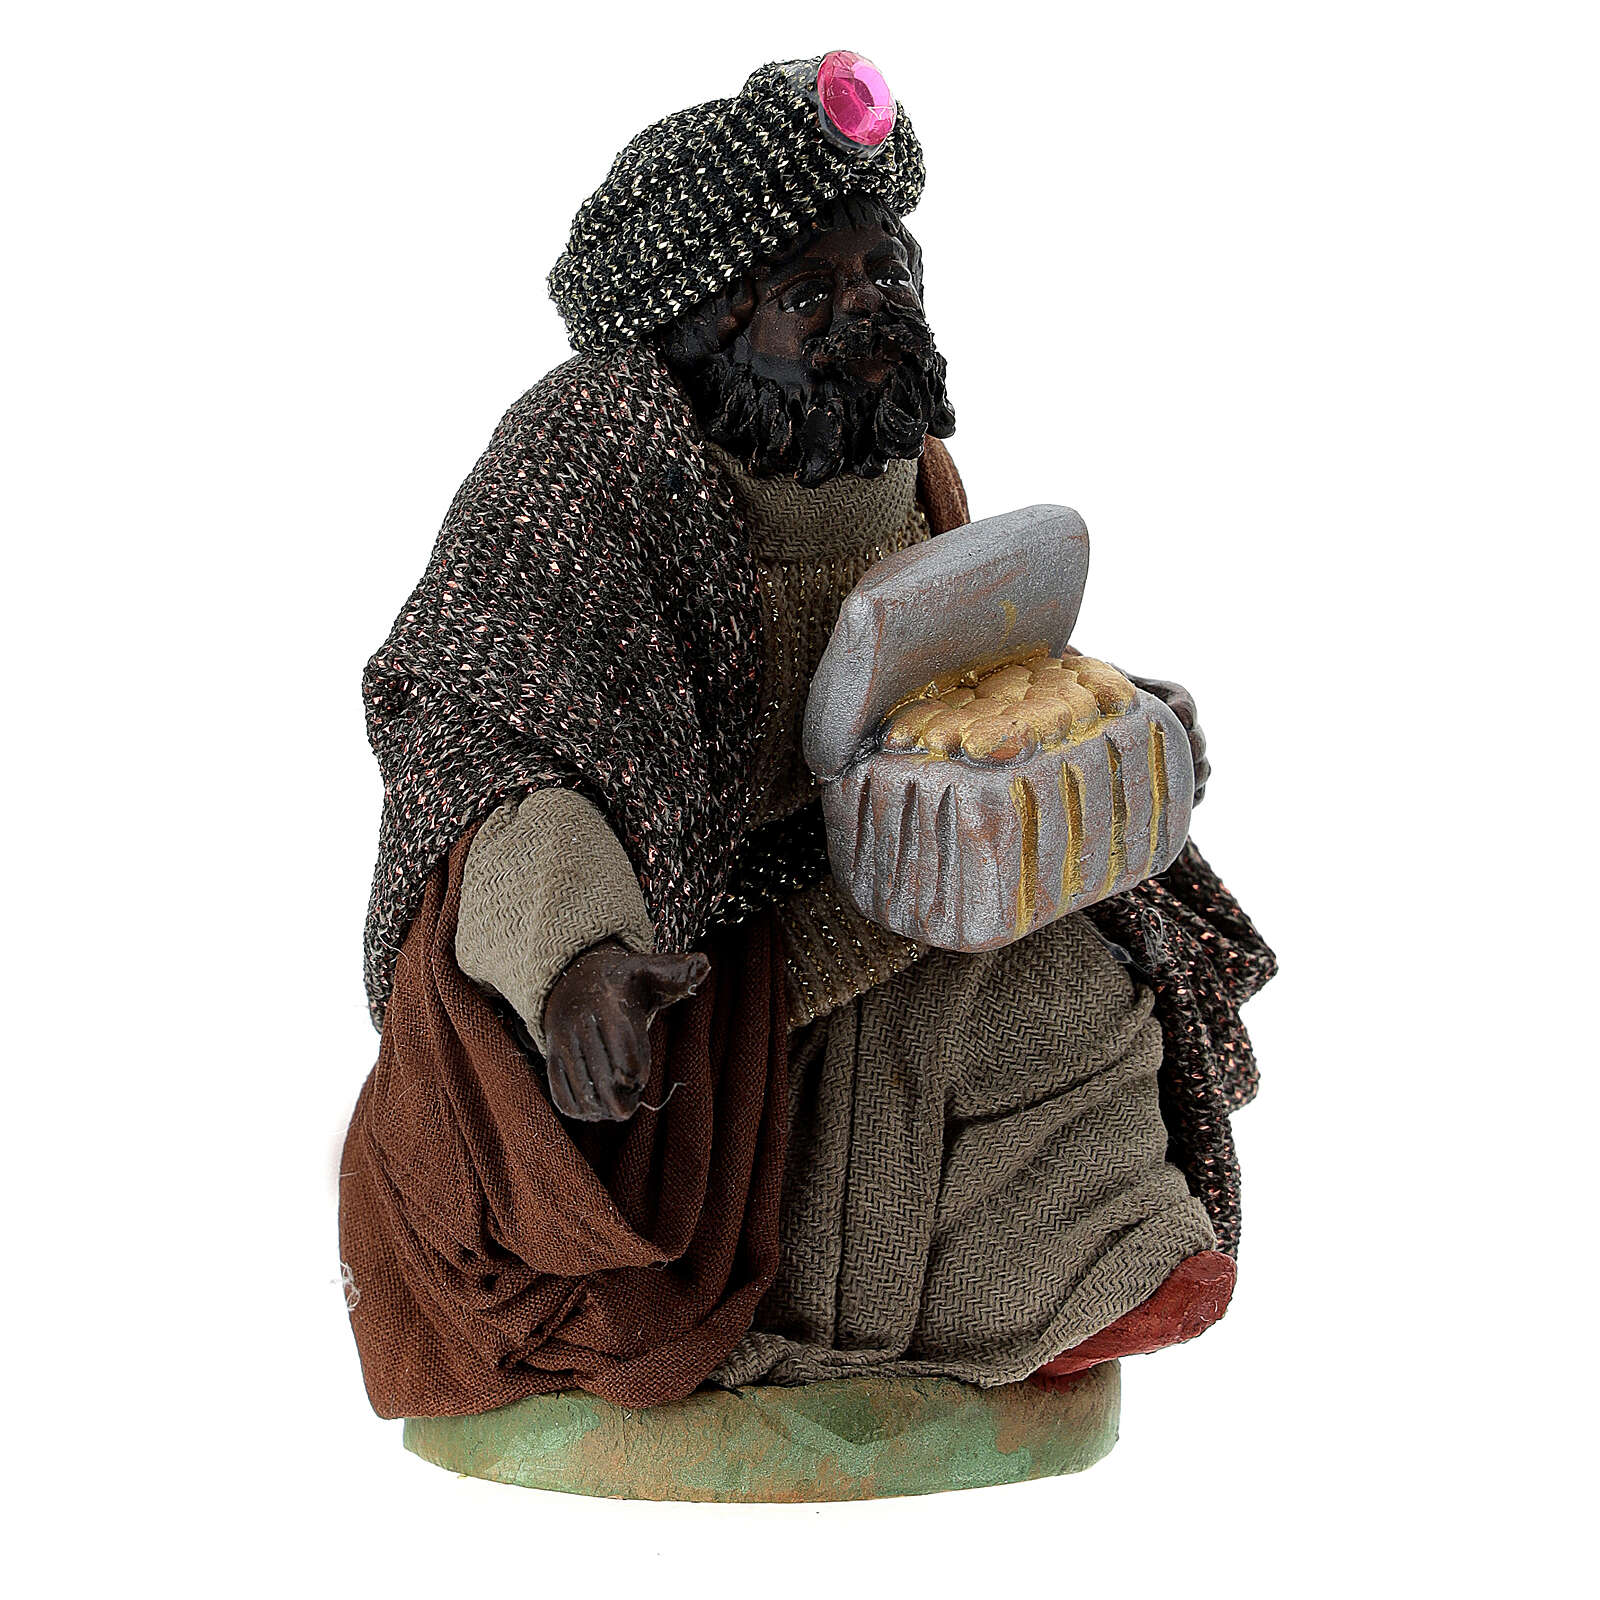 Nativity ser Three wise Kings 10 cm clay figurines 4